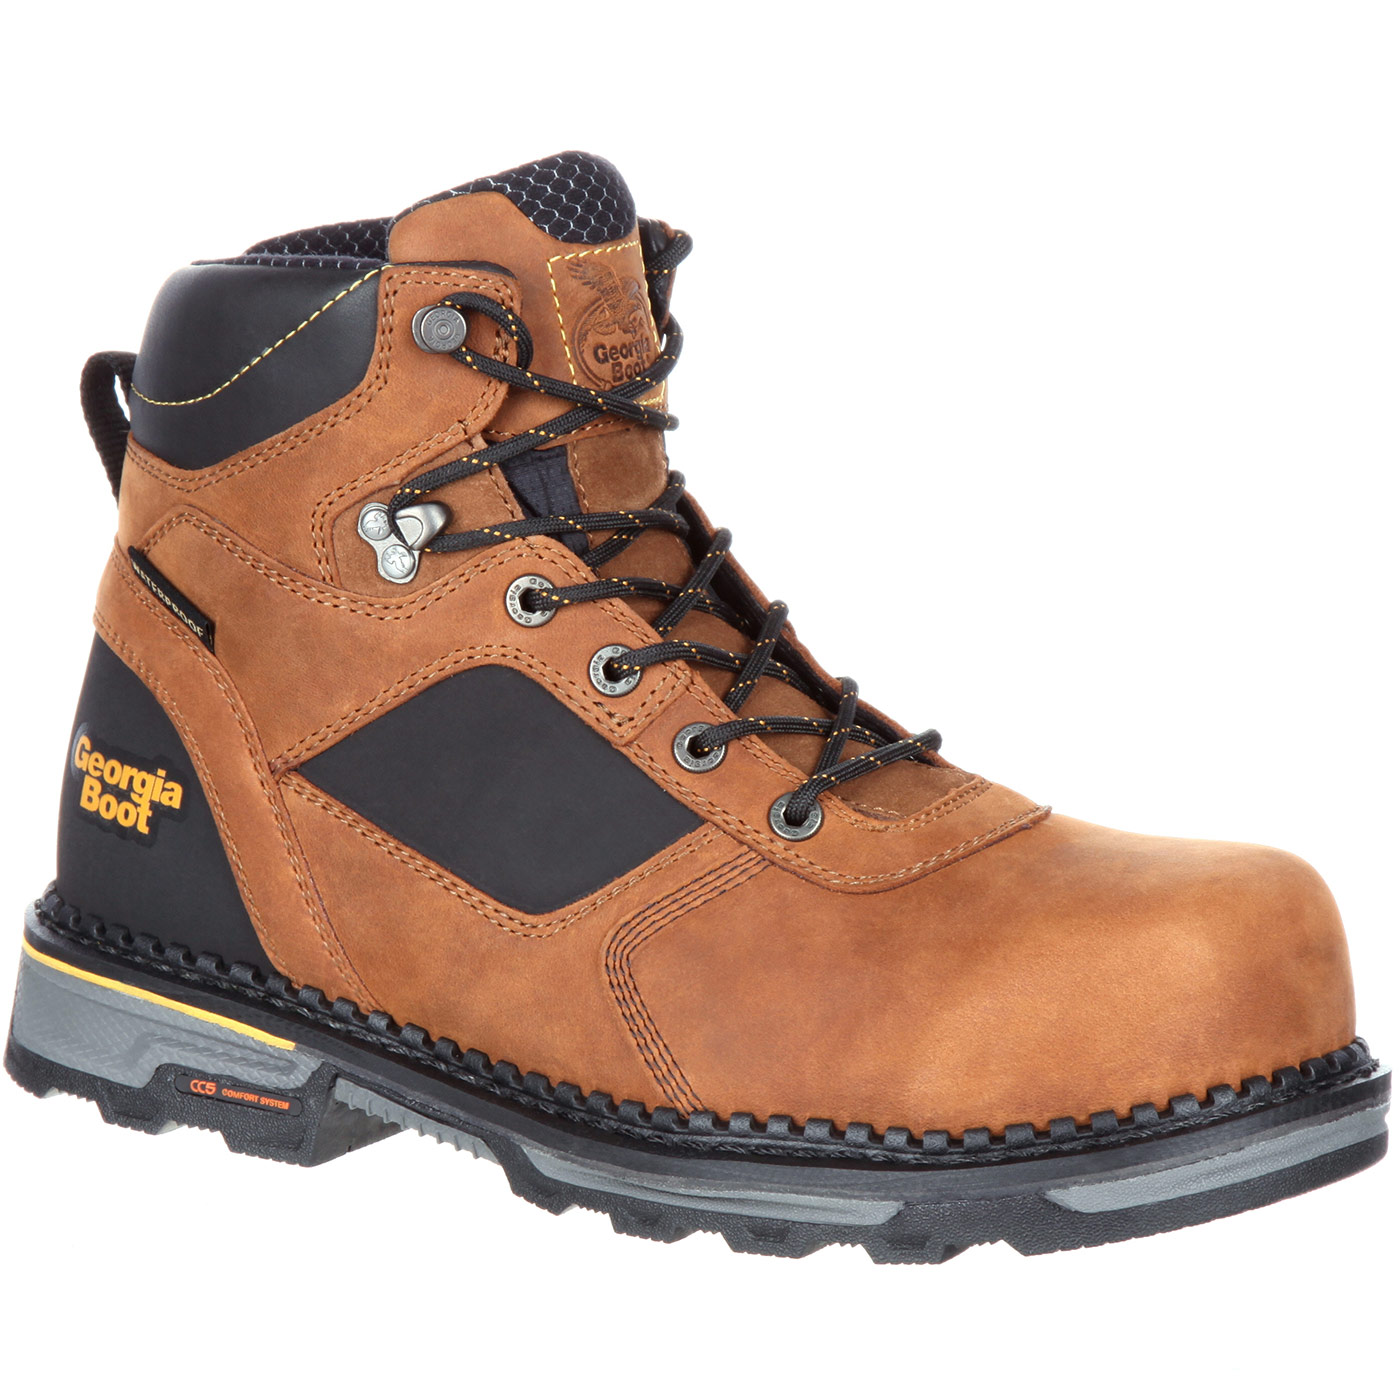 Composite Toe Work Boots - All Men's Composite Boots